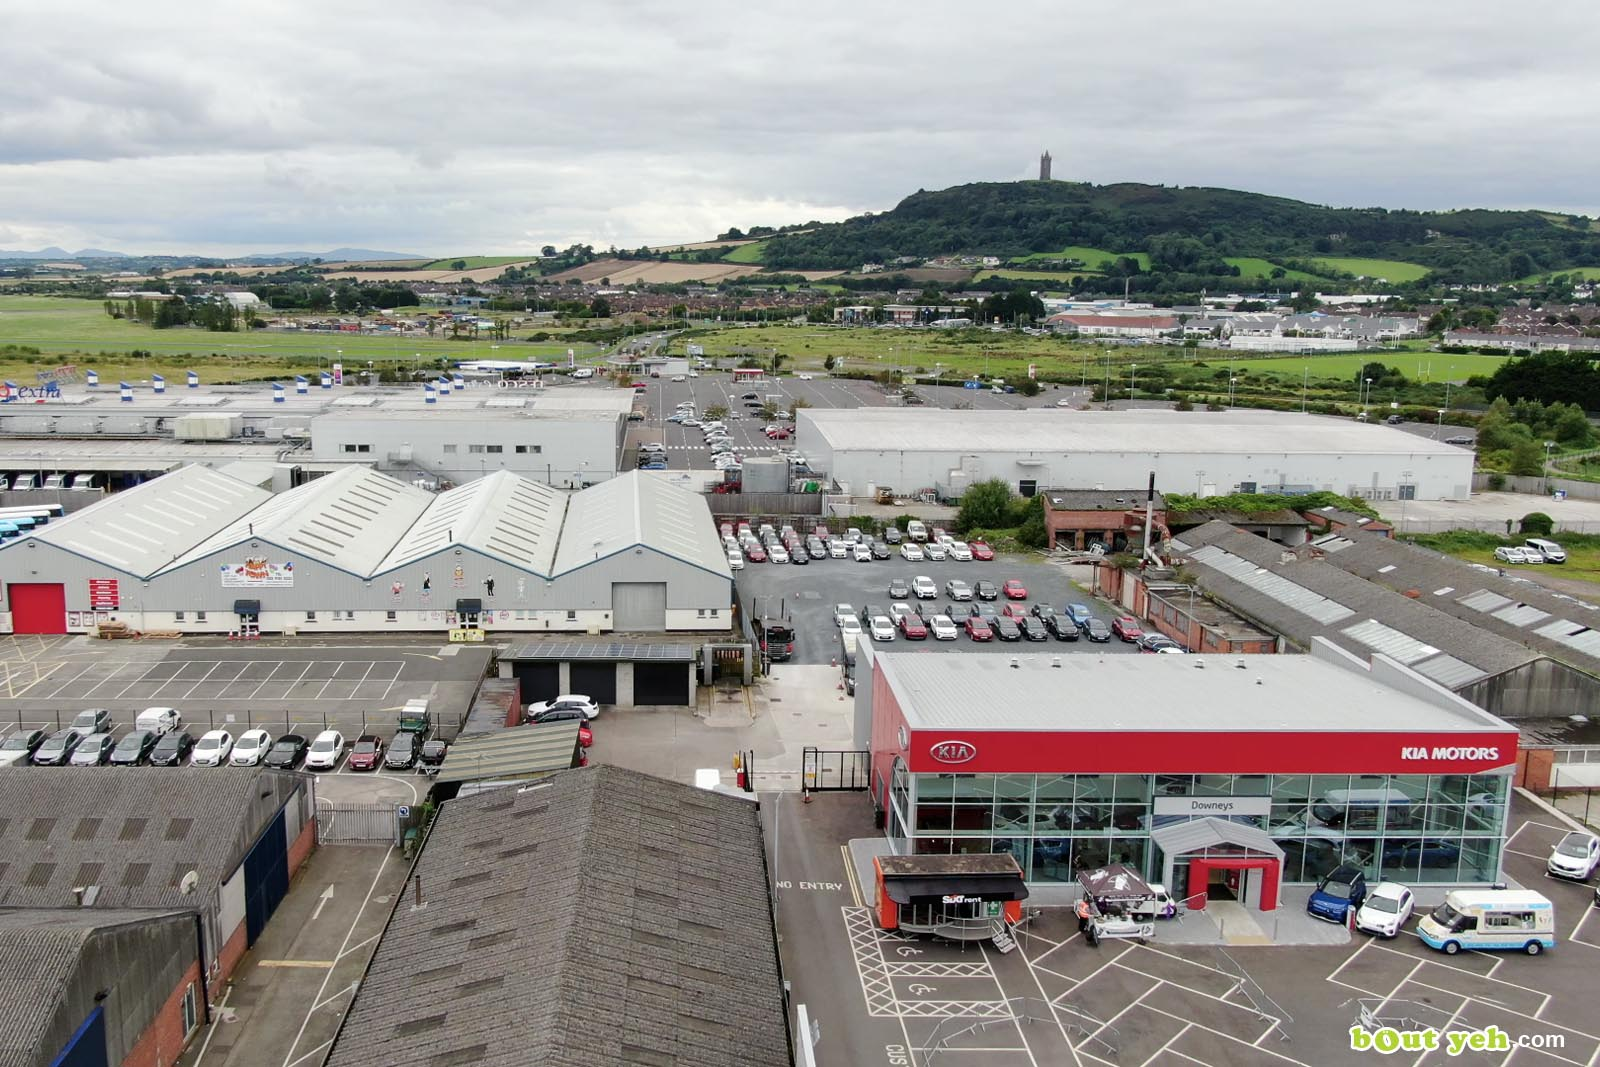 Aerial drone photography of Kia Cars Newtownabbey by Bout Yeh aerial drone photographers, Belfast, Northern Ireland - screenshot 2